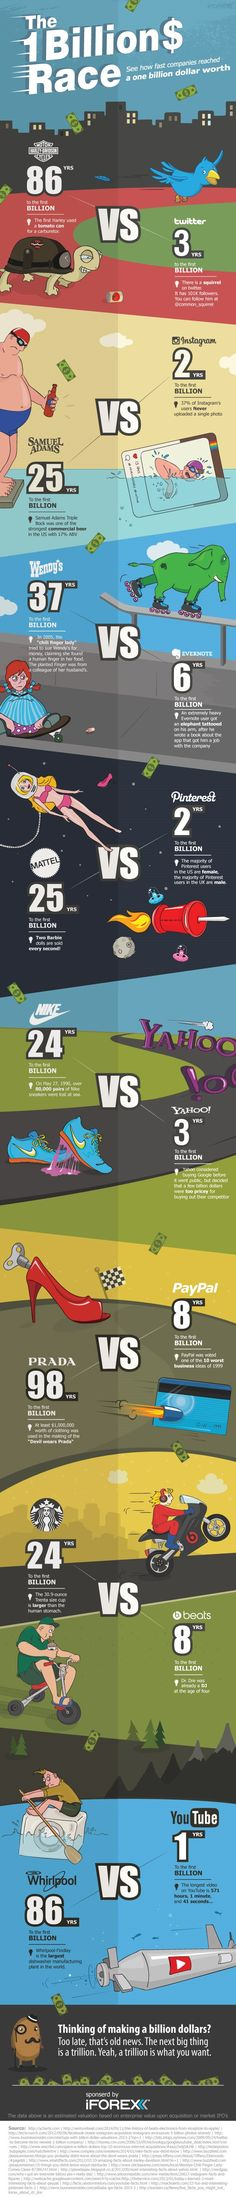 The Race To One Billion Dollars: How Fast Tech Companies Grow [Infographic] | Daily Infographic